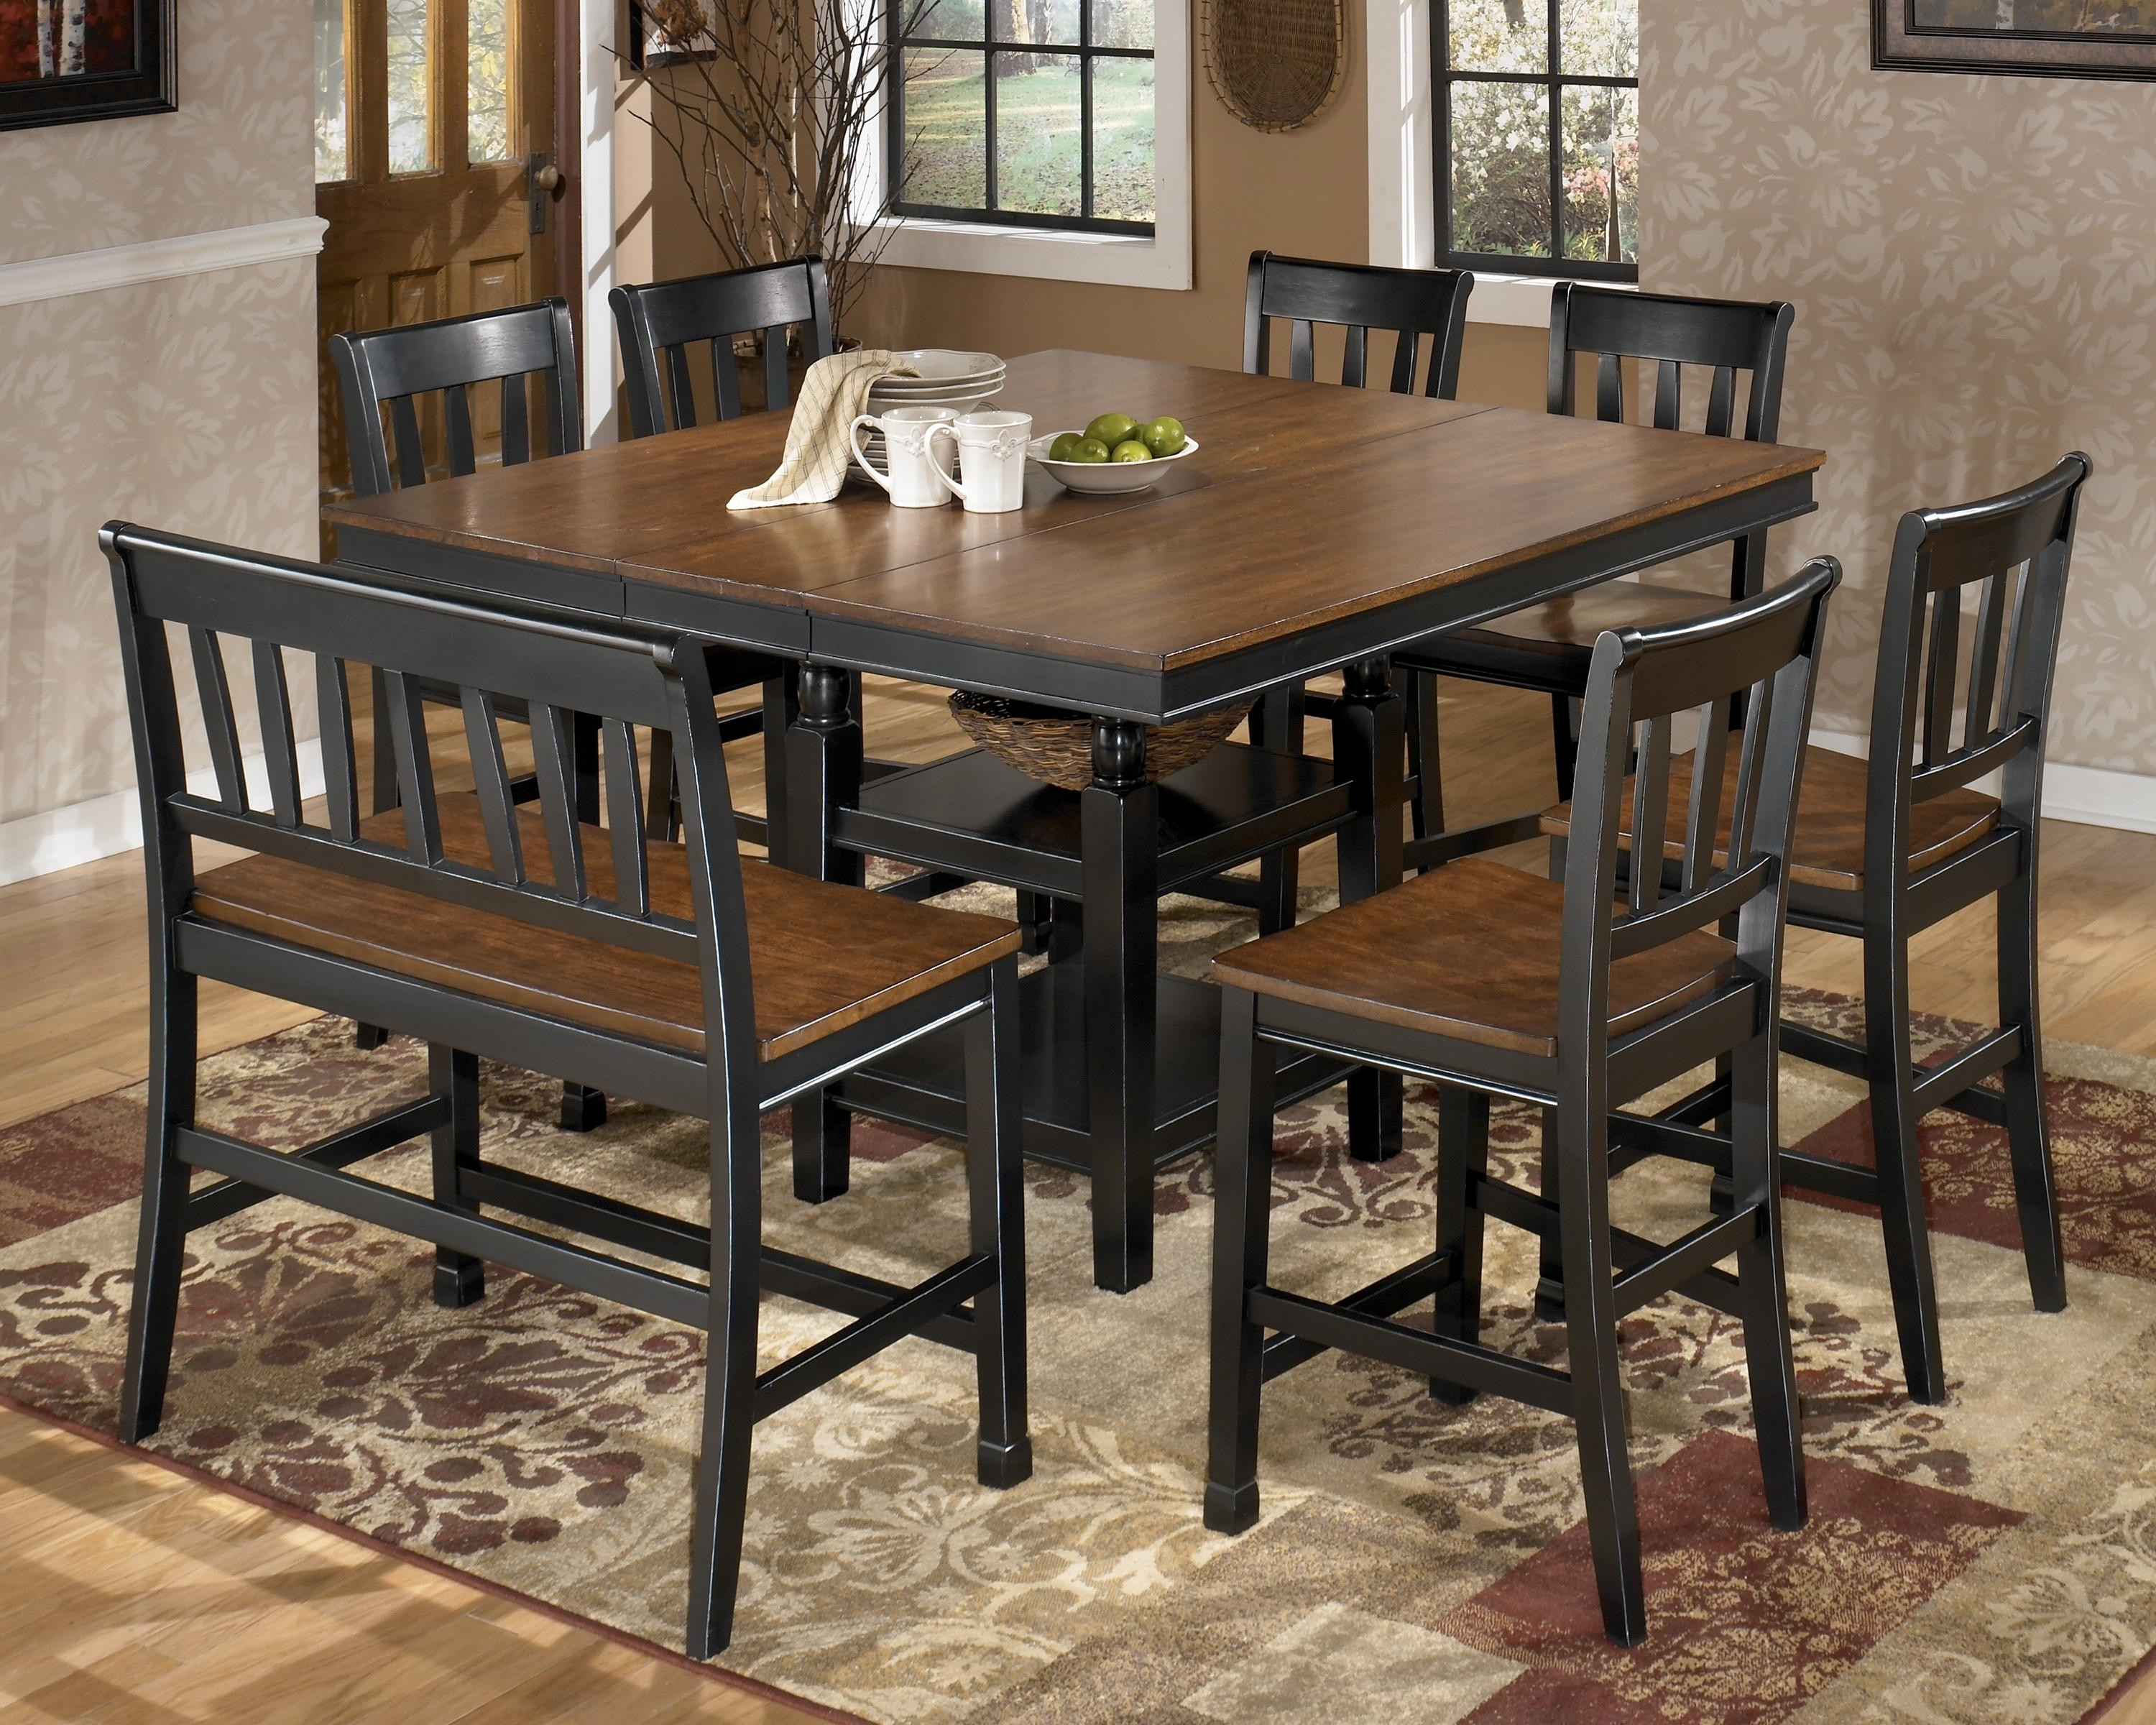 Solid Oak Dining Room Table And 8 Chairs New Ashley Counter Height Inside 2017 Dining Tables With 8 Chairs (View 16 of 25)